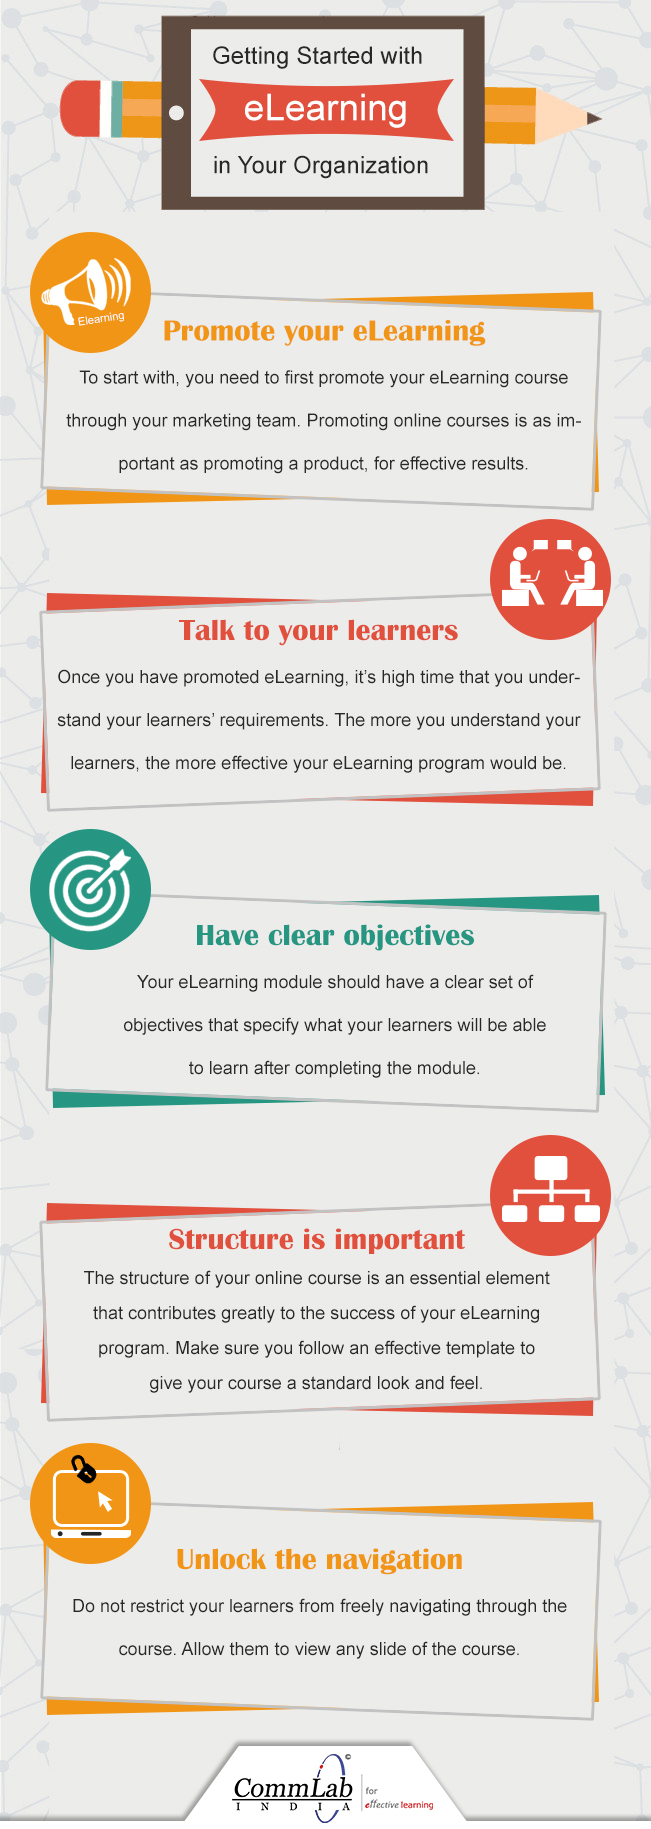 Getting Started with E-learning in Your Organization – An Infographic